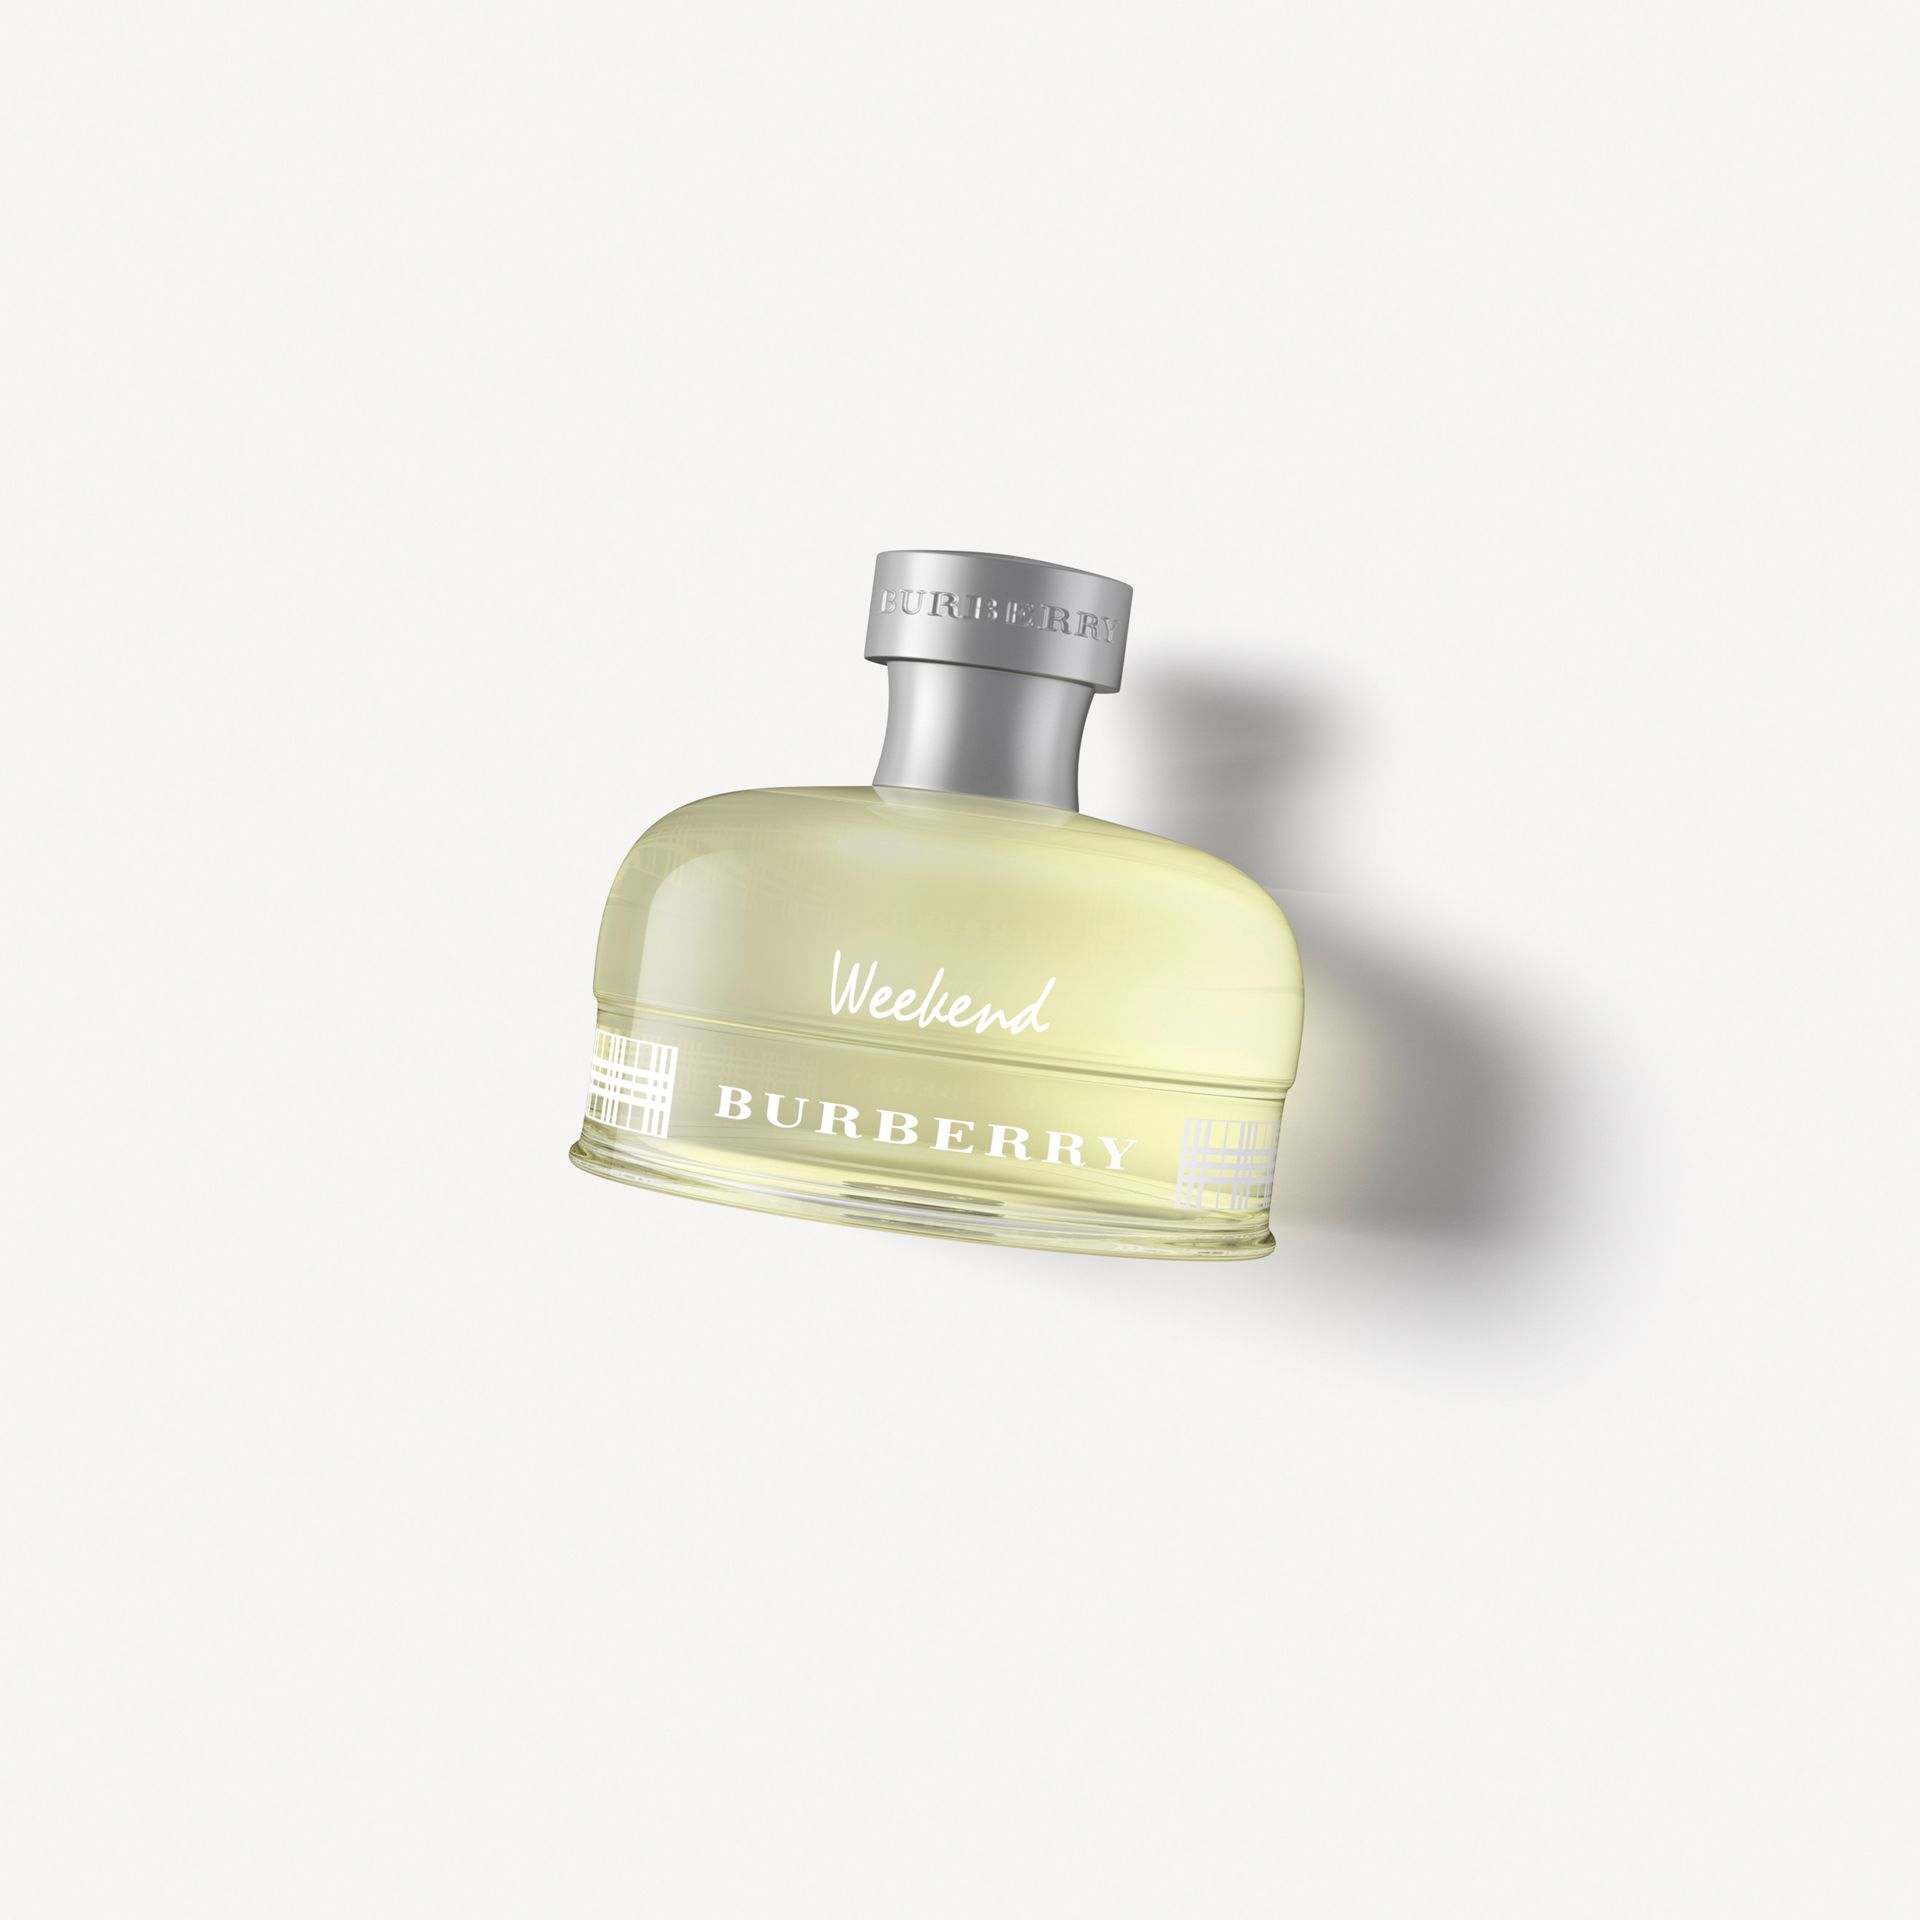 Burberry Weekend Eau de Parfum 100 ml - Damen | Burberry - Galerie-Bild 0